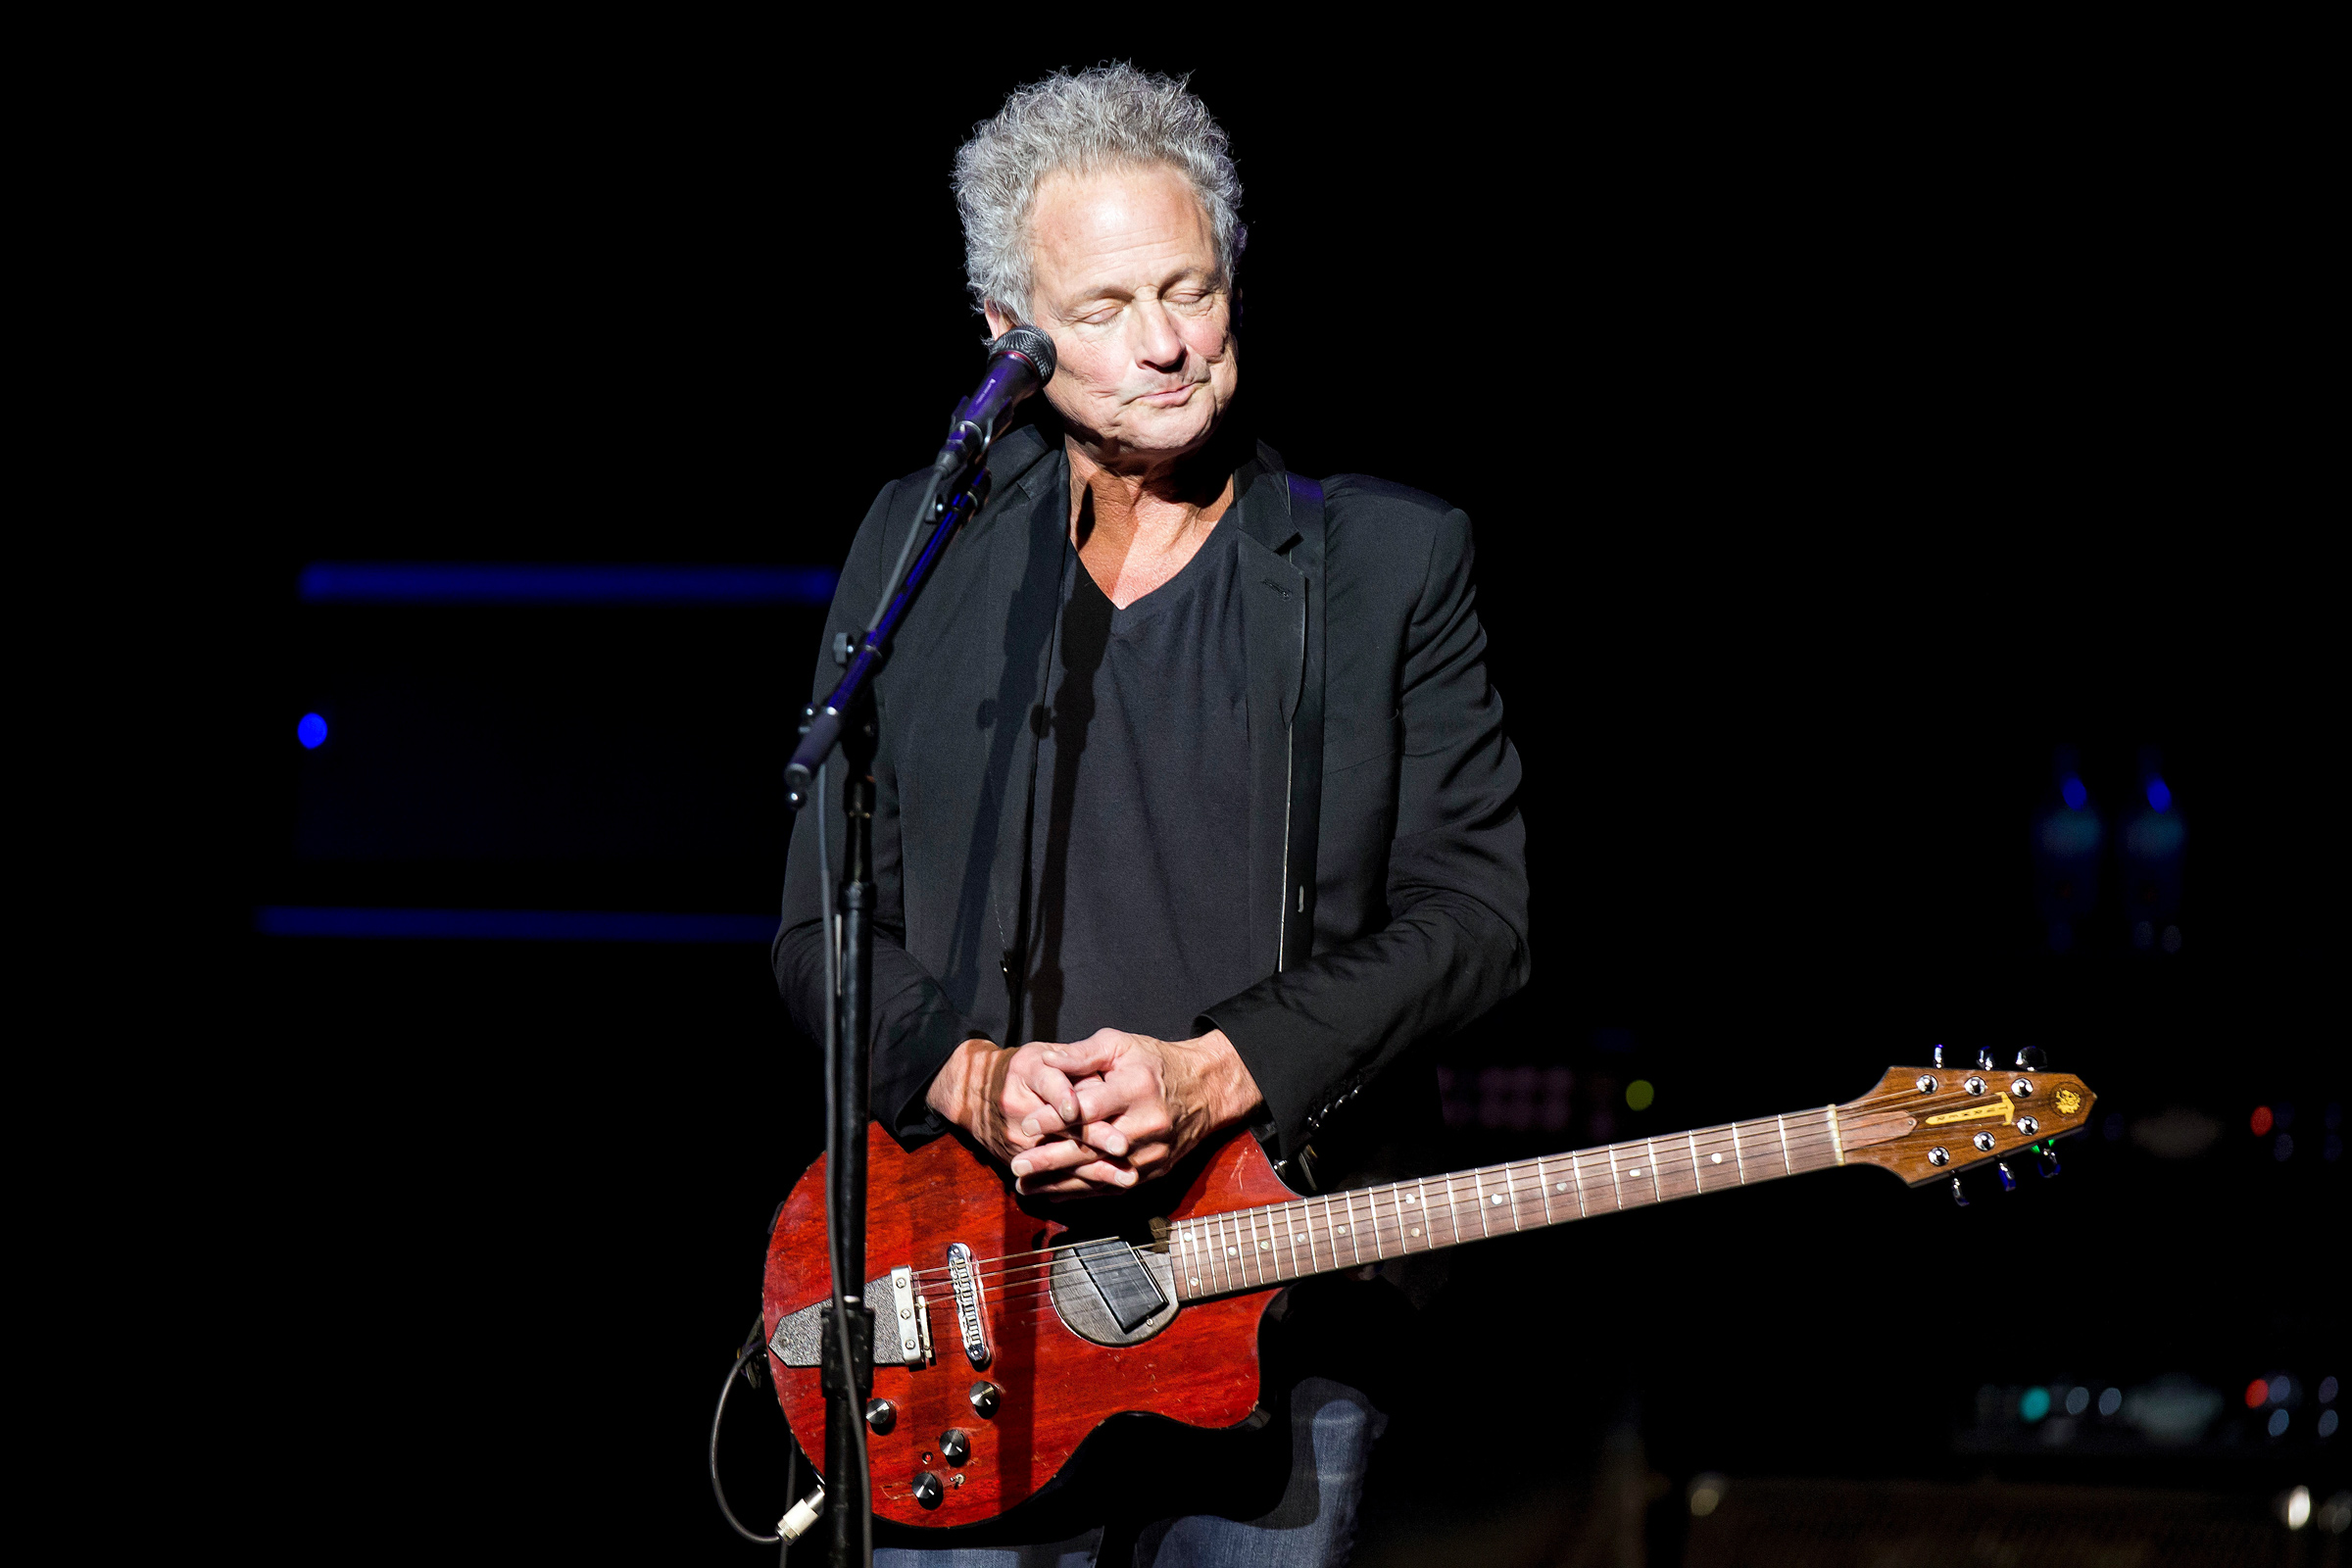 Lindsay Buckingham Suffers Vocal Cord Damage After Emergency Surgery